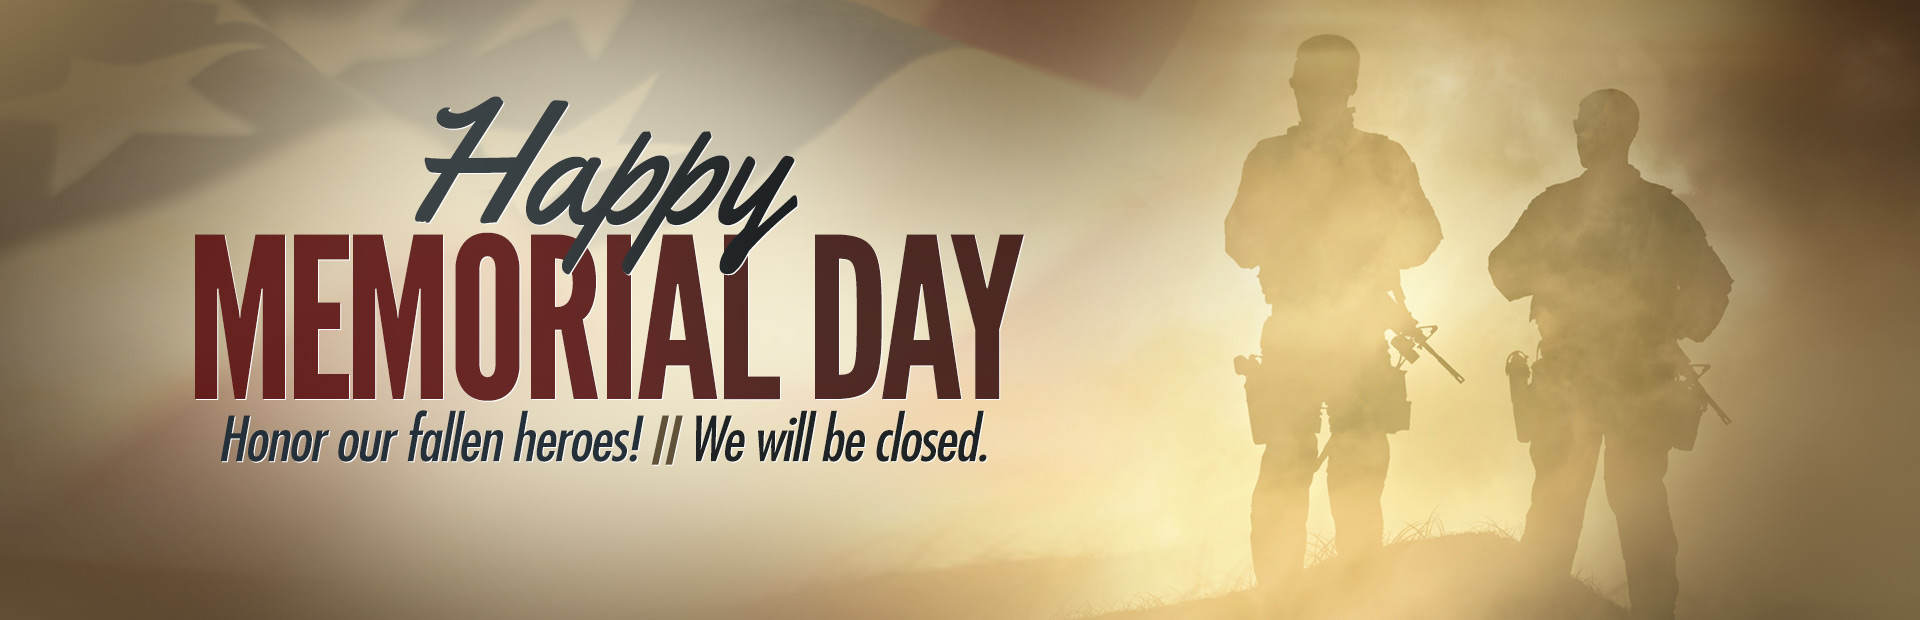 Happy Memorial Day! To honor our fallen heroes, we will be closed for the holiday.